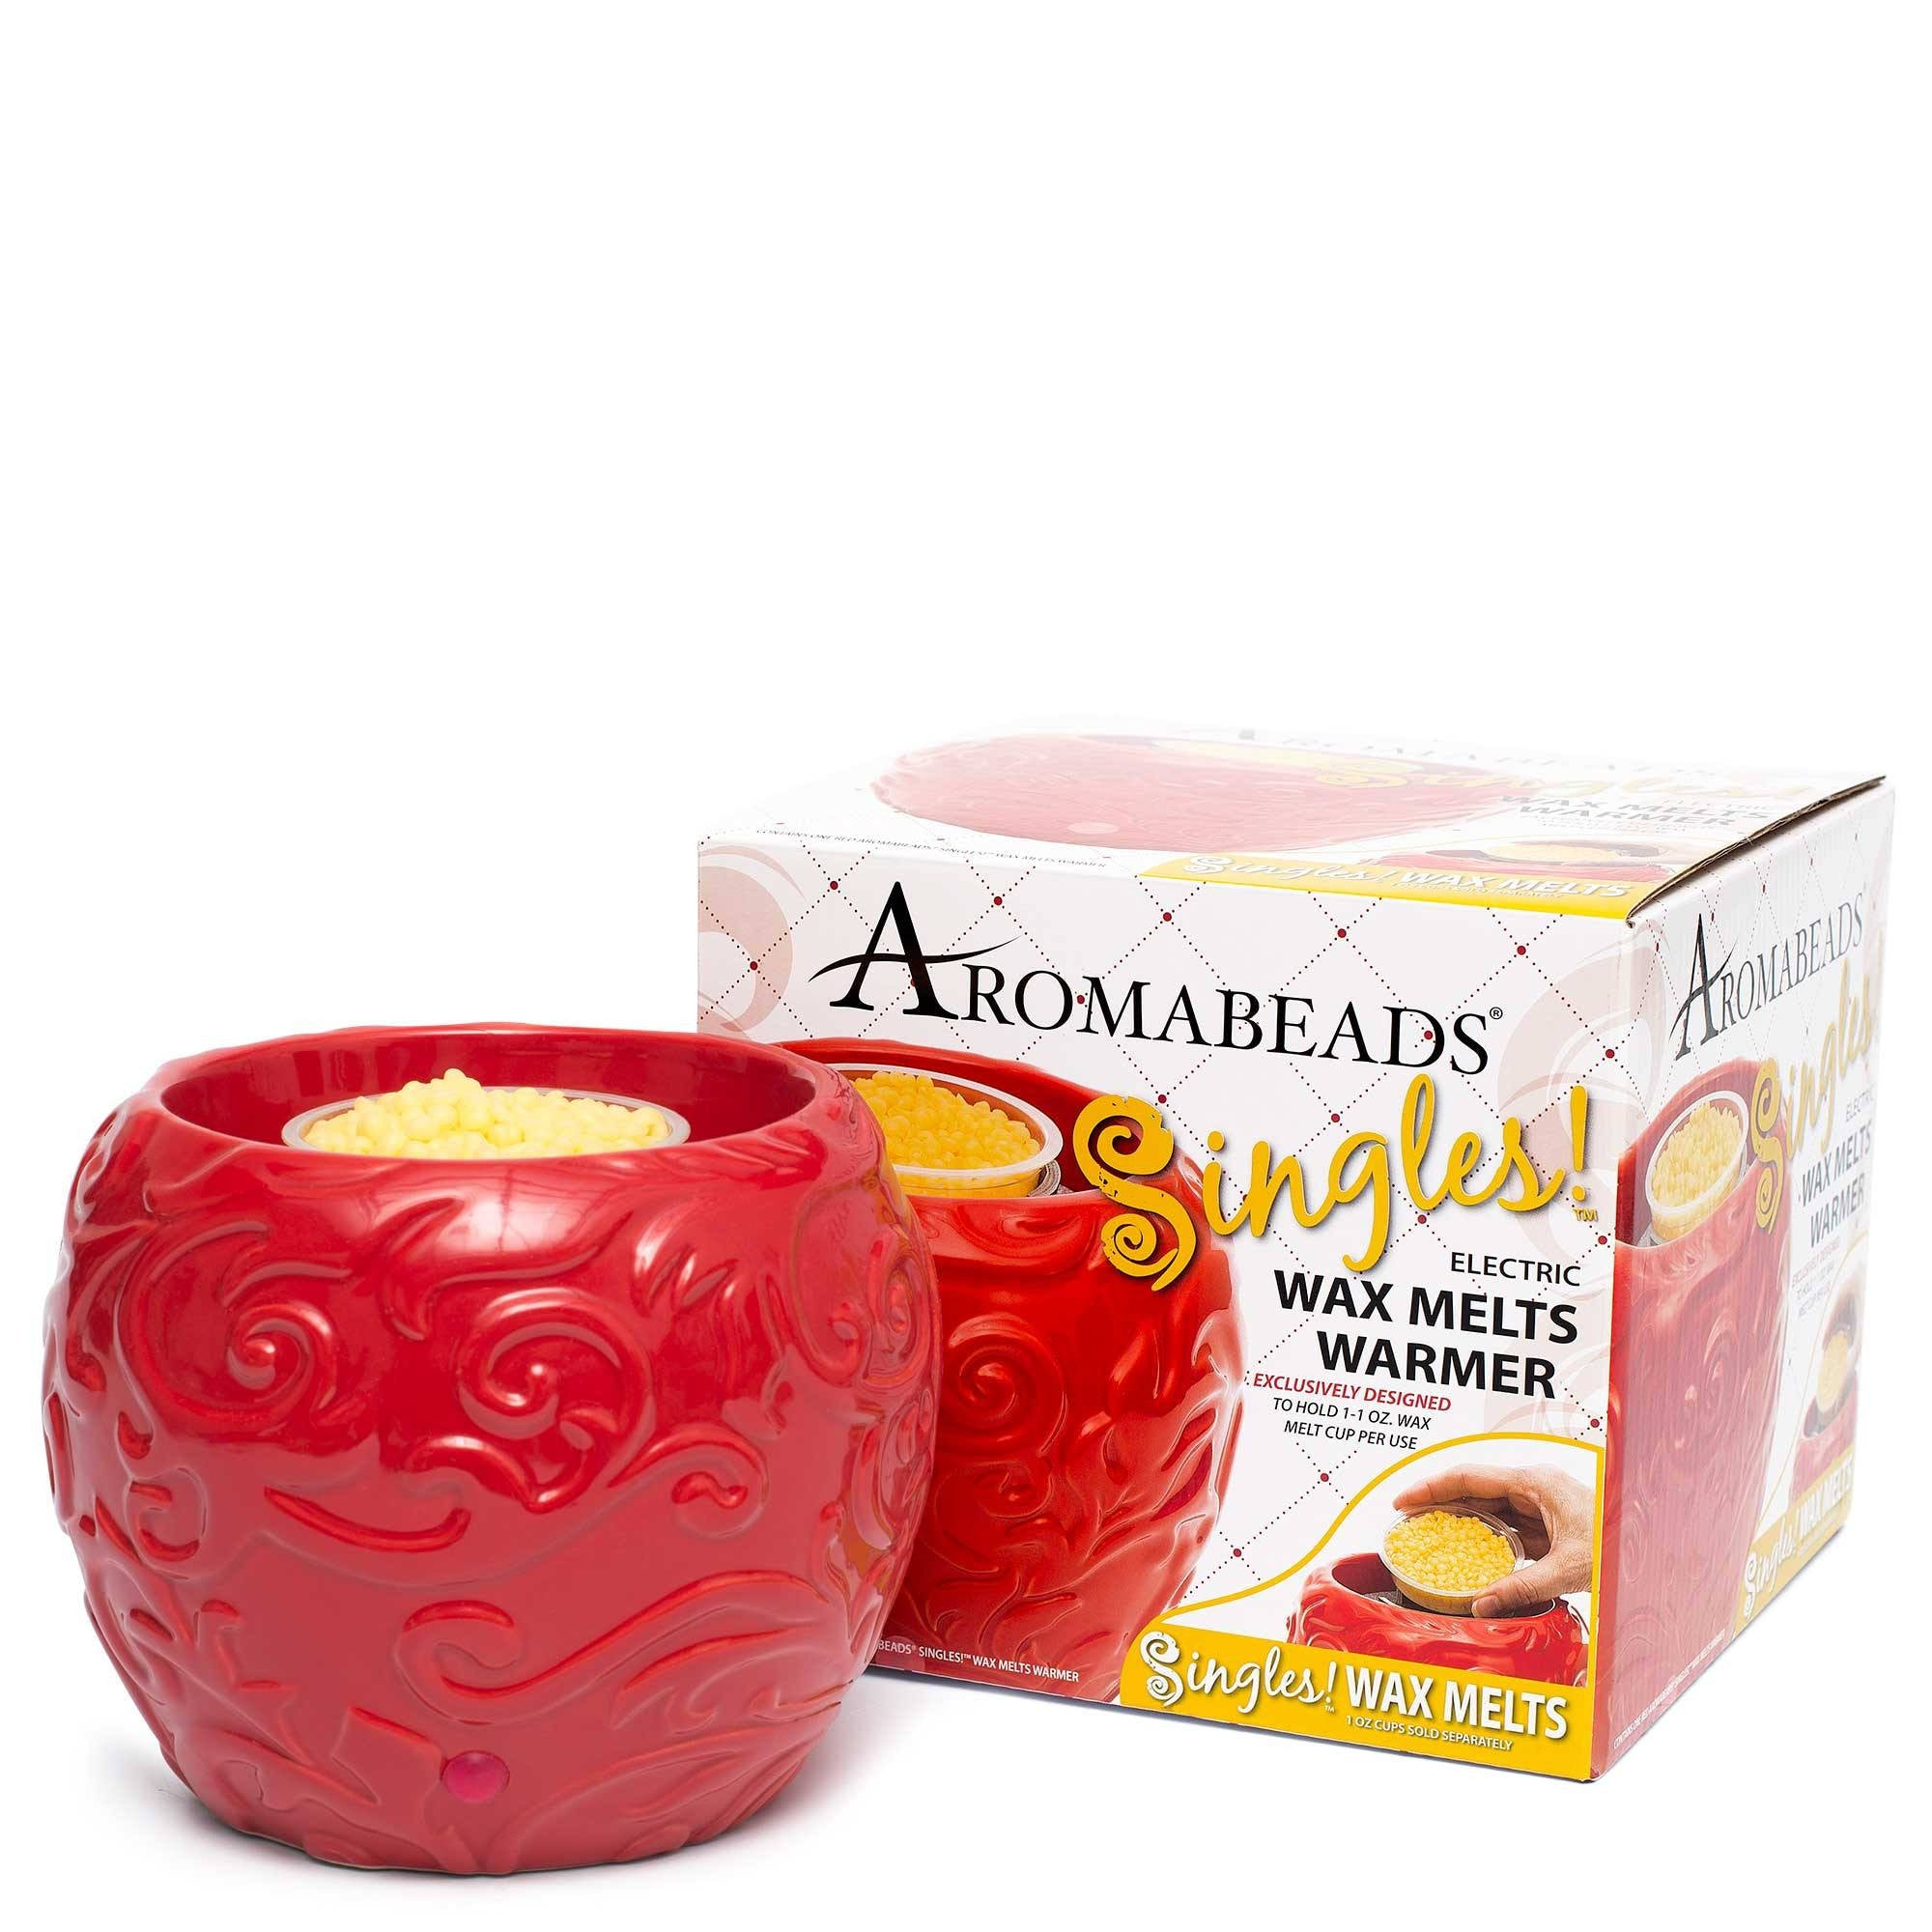 Aromabeads Singles Apple Melon Scented Wax Melts - Candlemart.com - 3